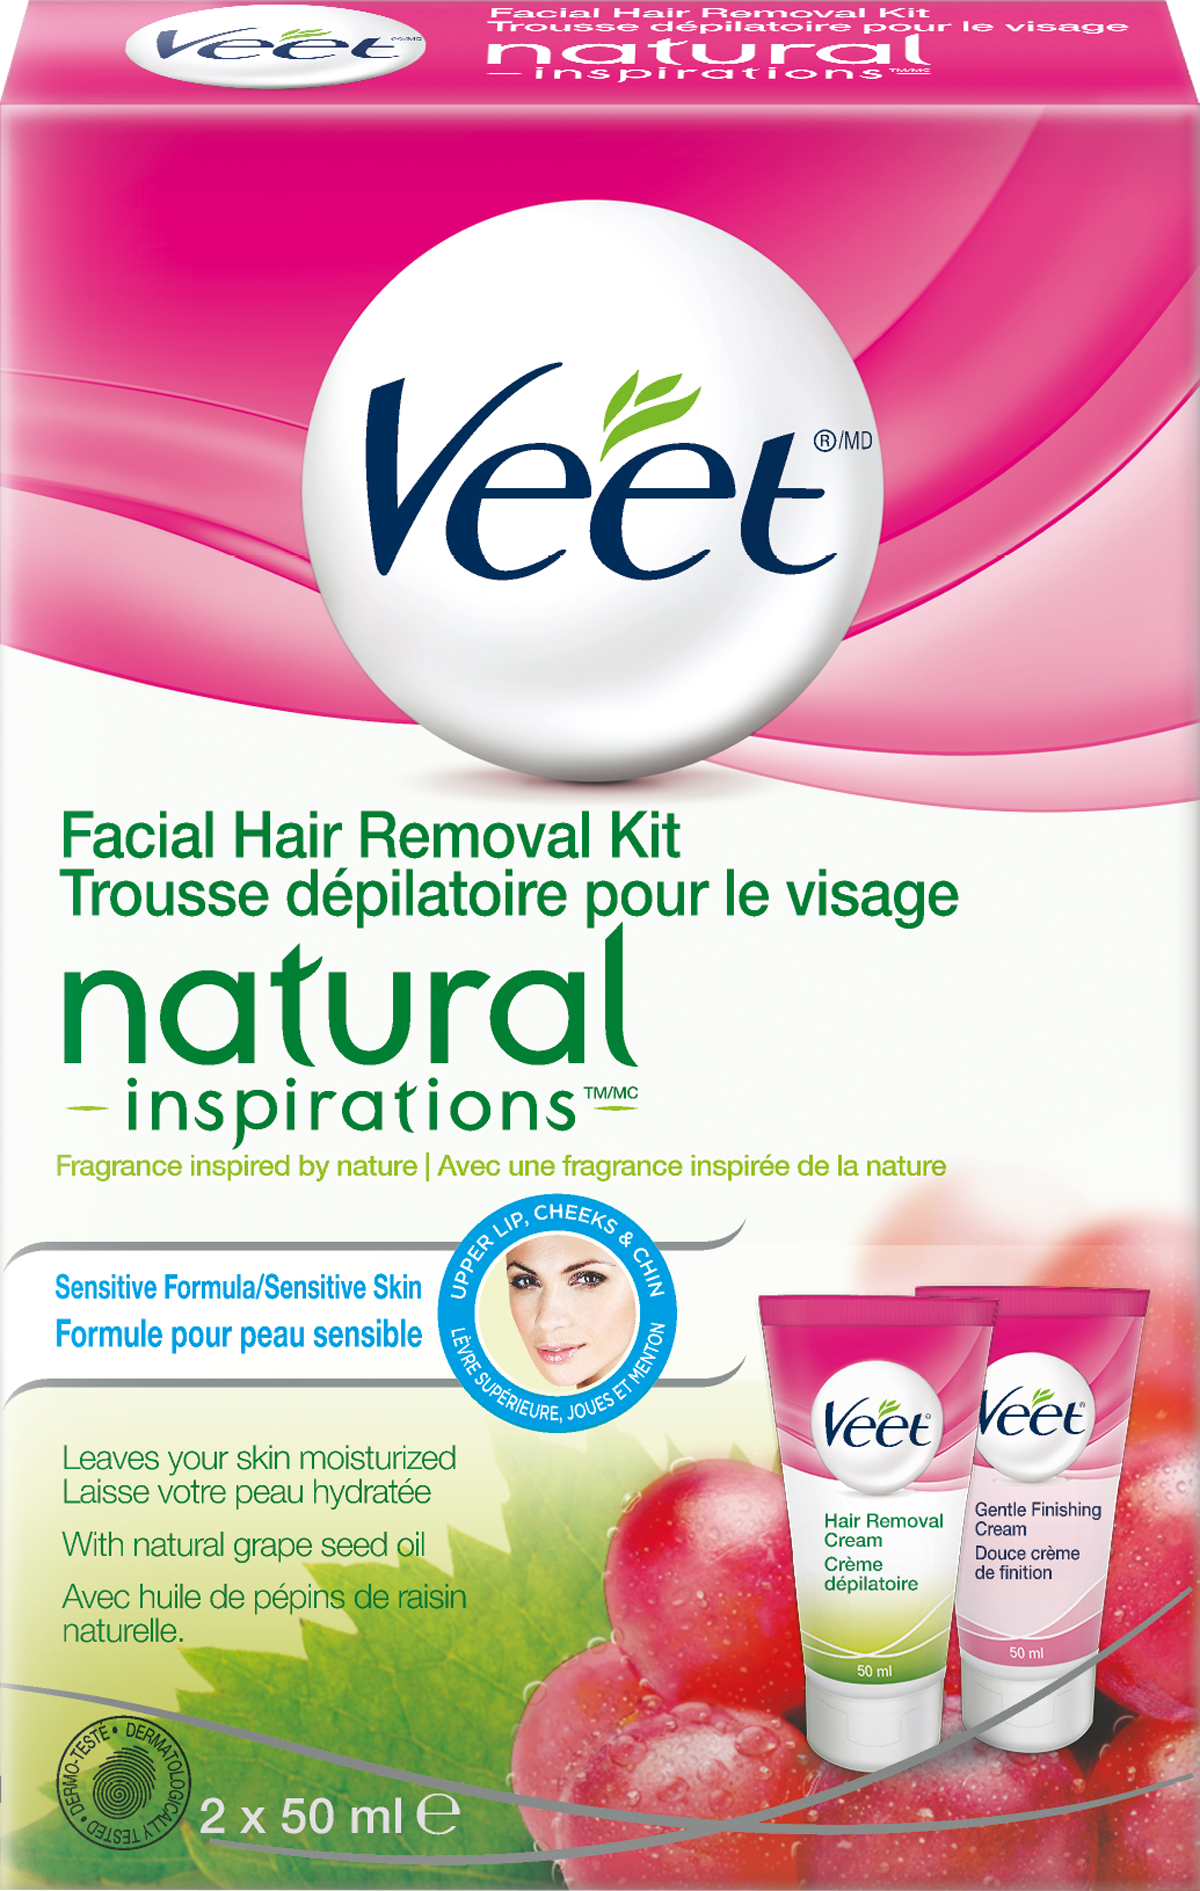 Veet Natural Inspirations Facial Hair Removal Kit Gentle